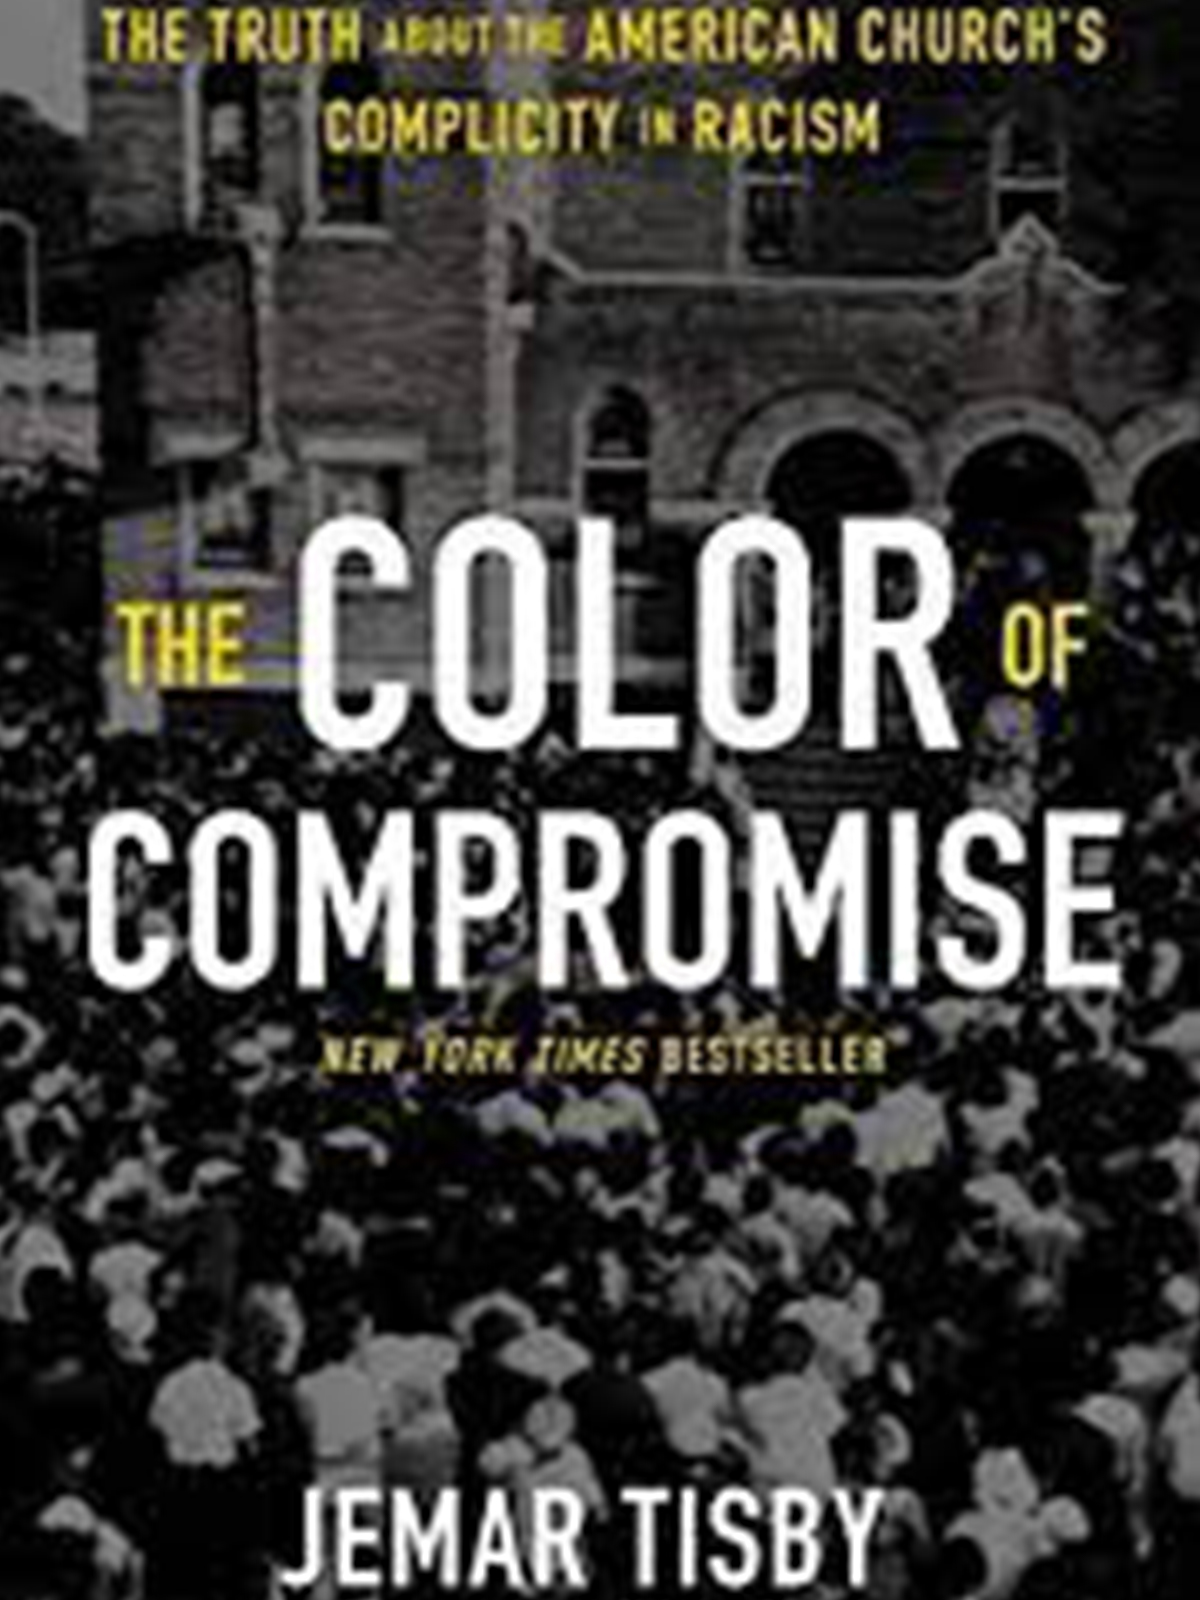 Book_Color of Compromise